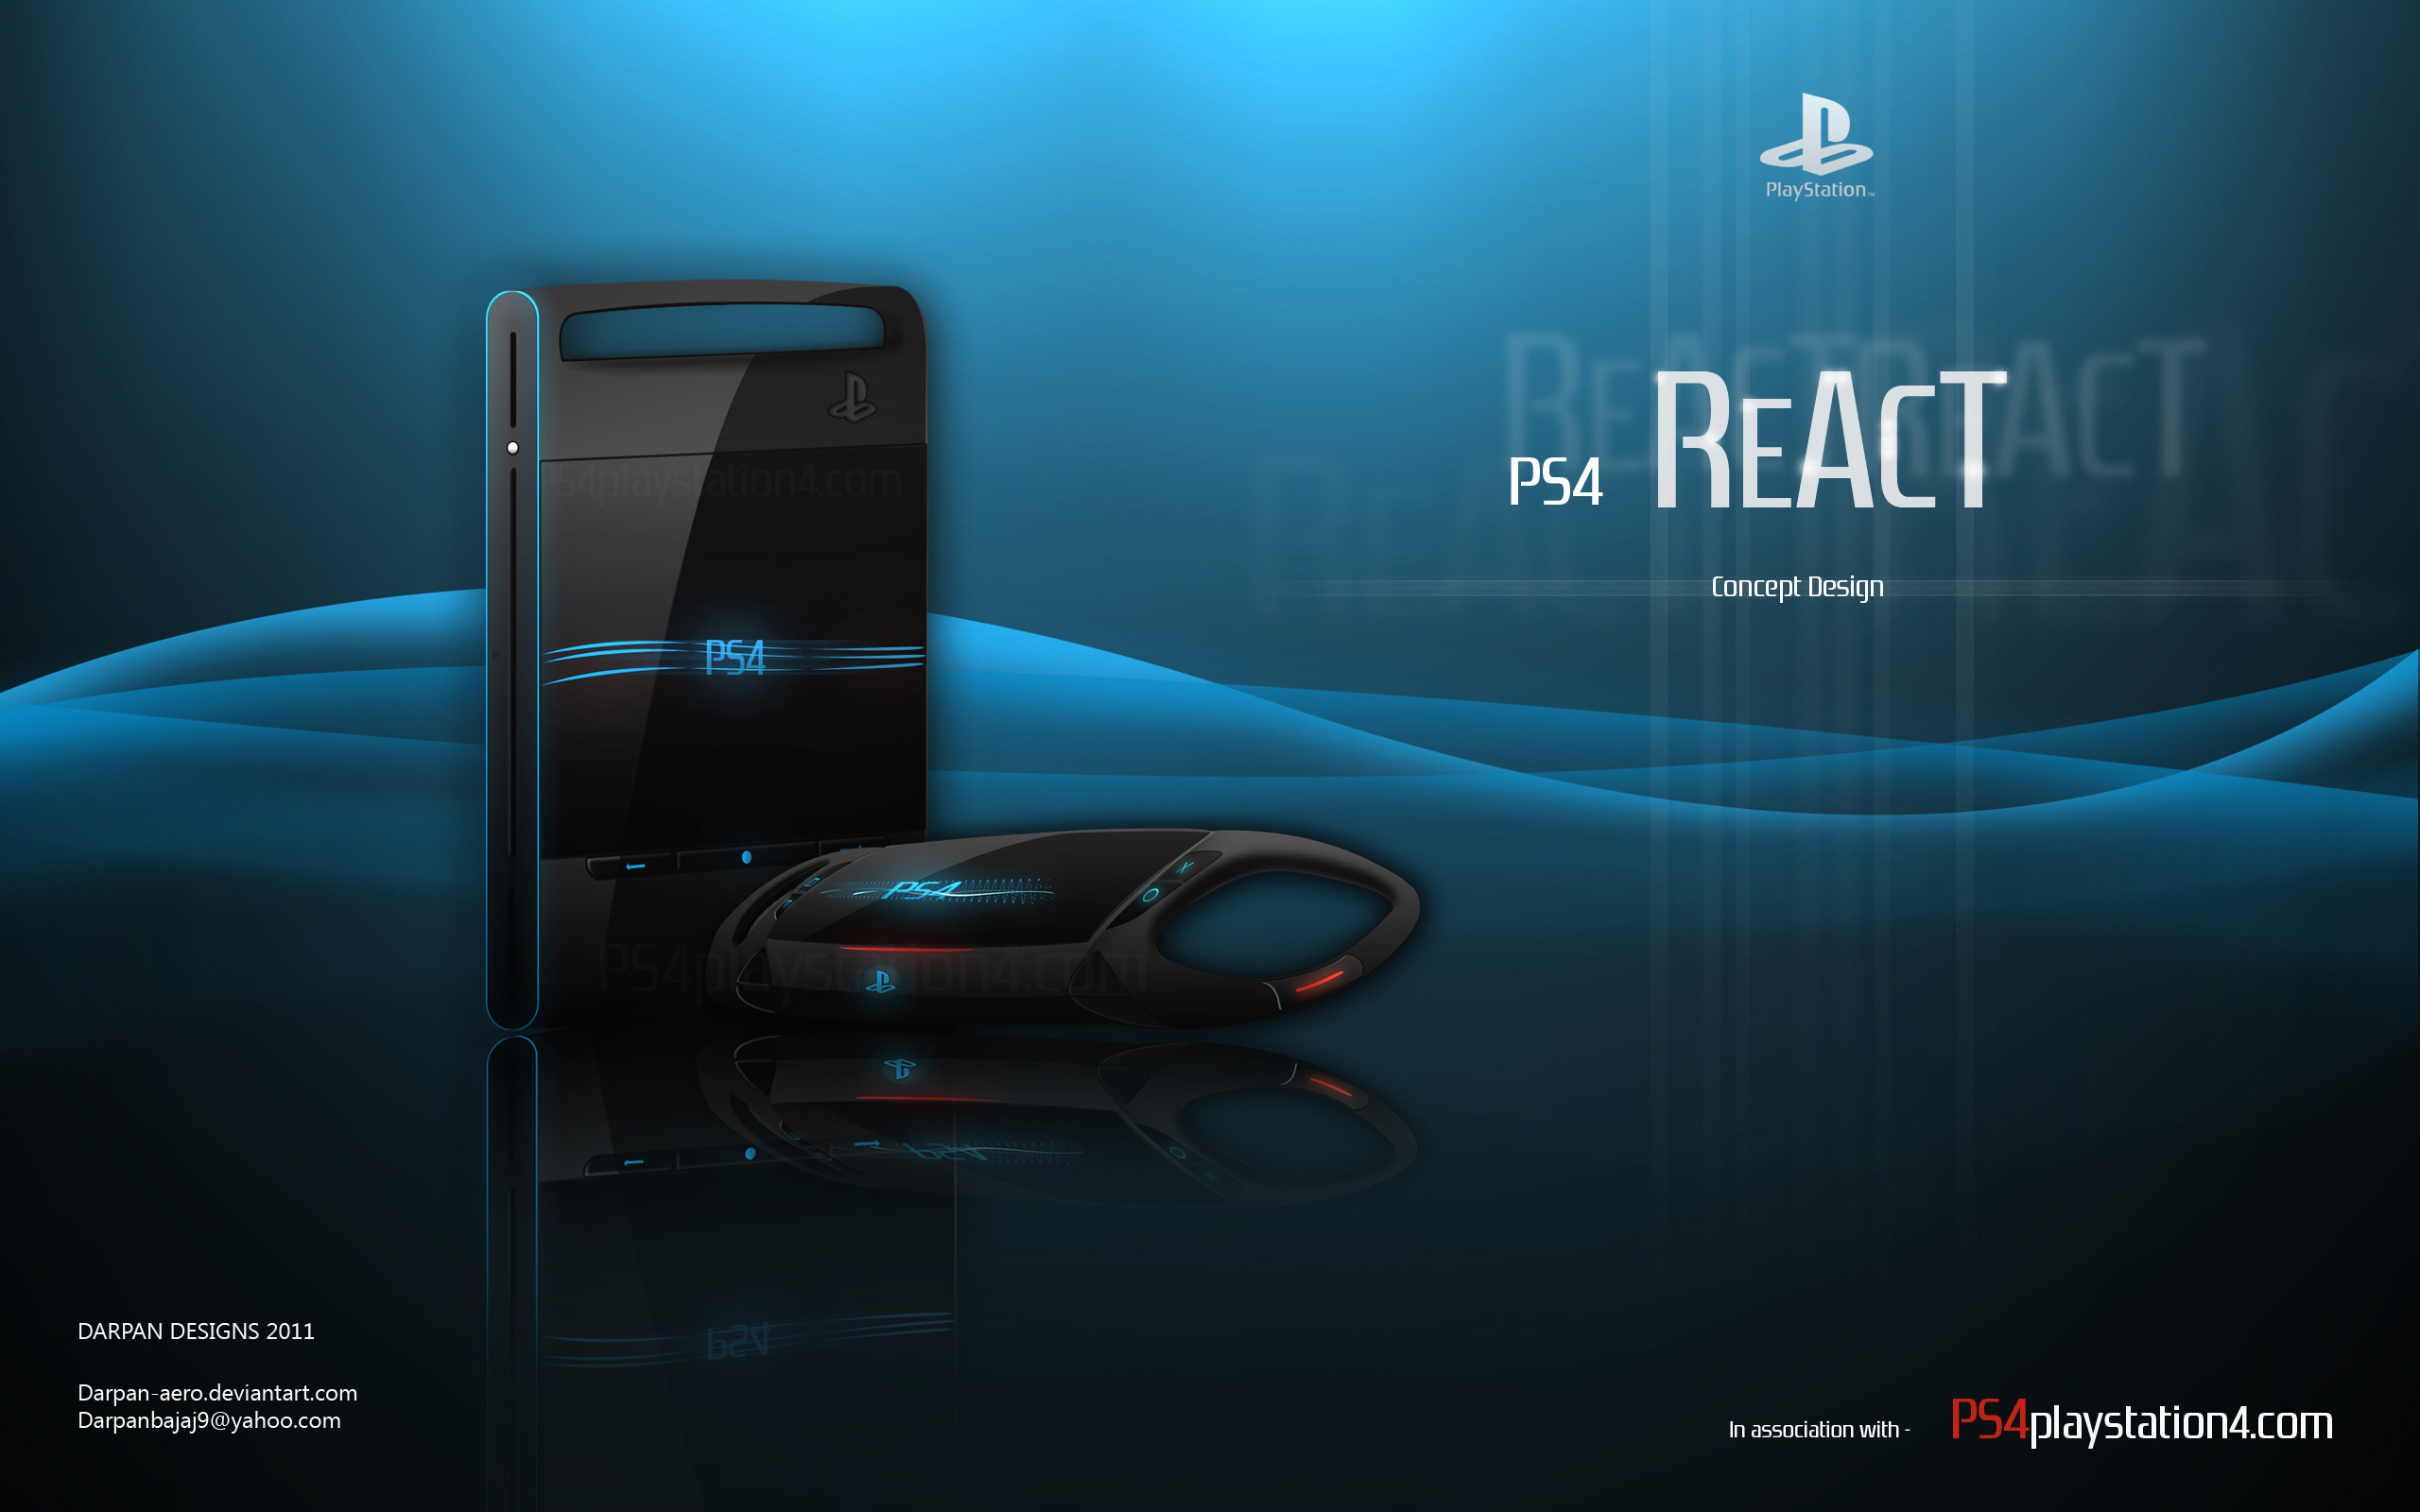 Wallpaper download ps4 - Ps4 Minimalistic Wallpaper By